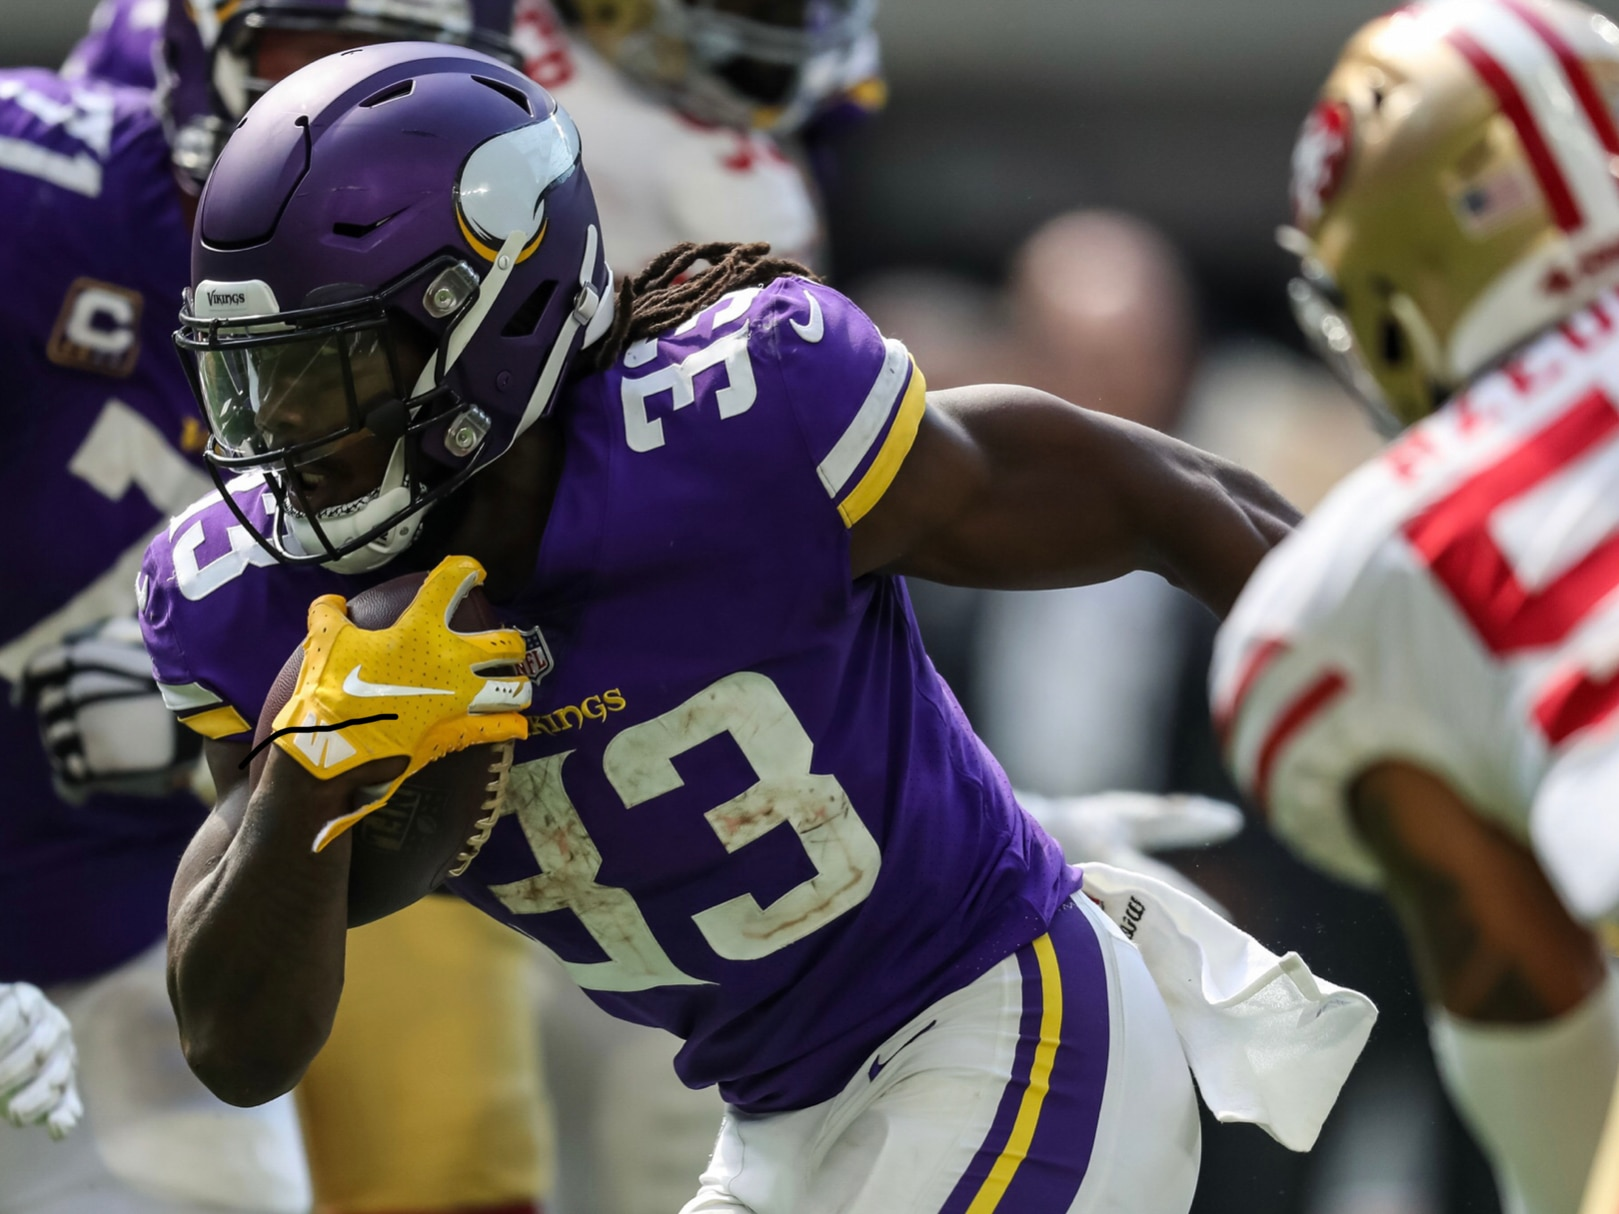 WATCH: Dalvin Cook turns on the jets for 75-yard touchdown